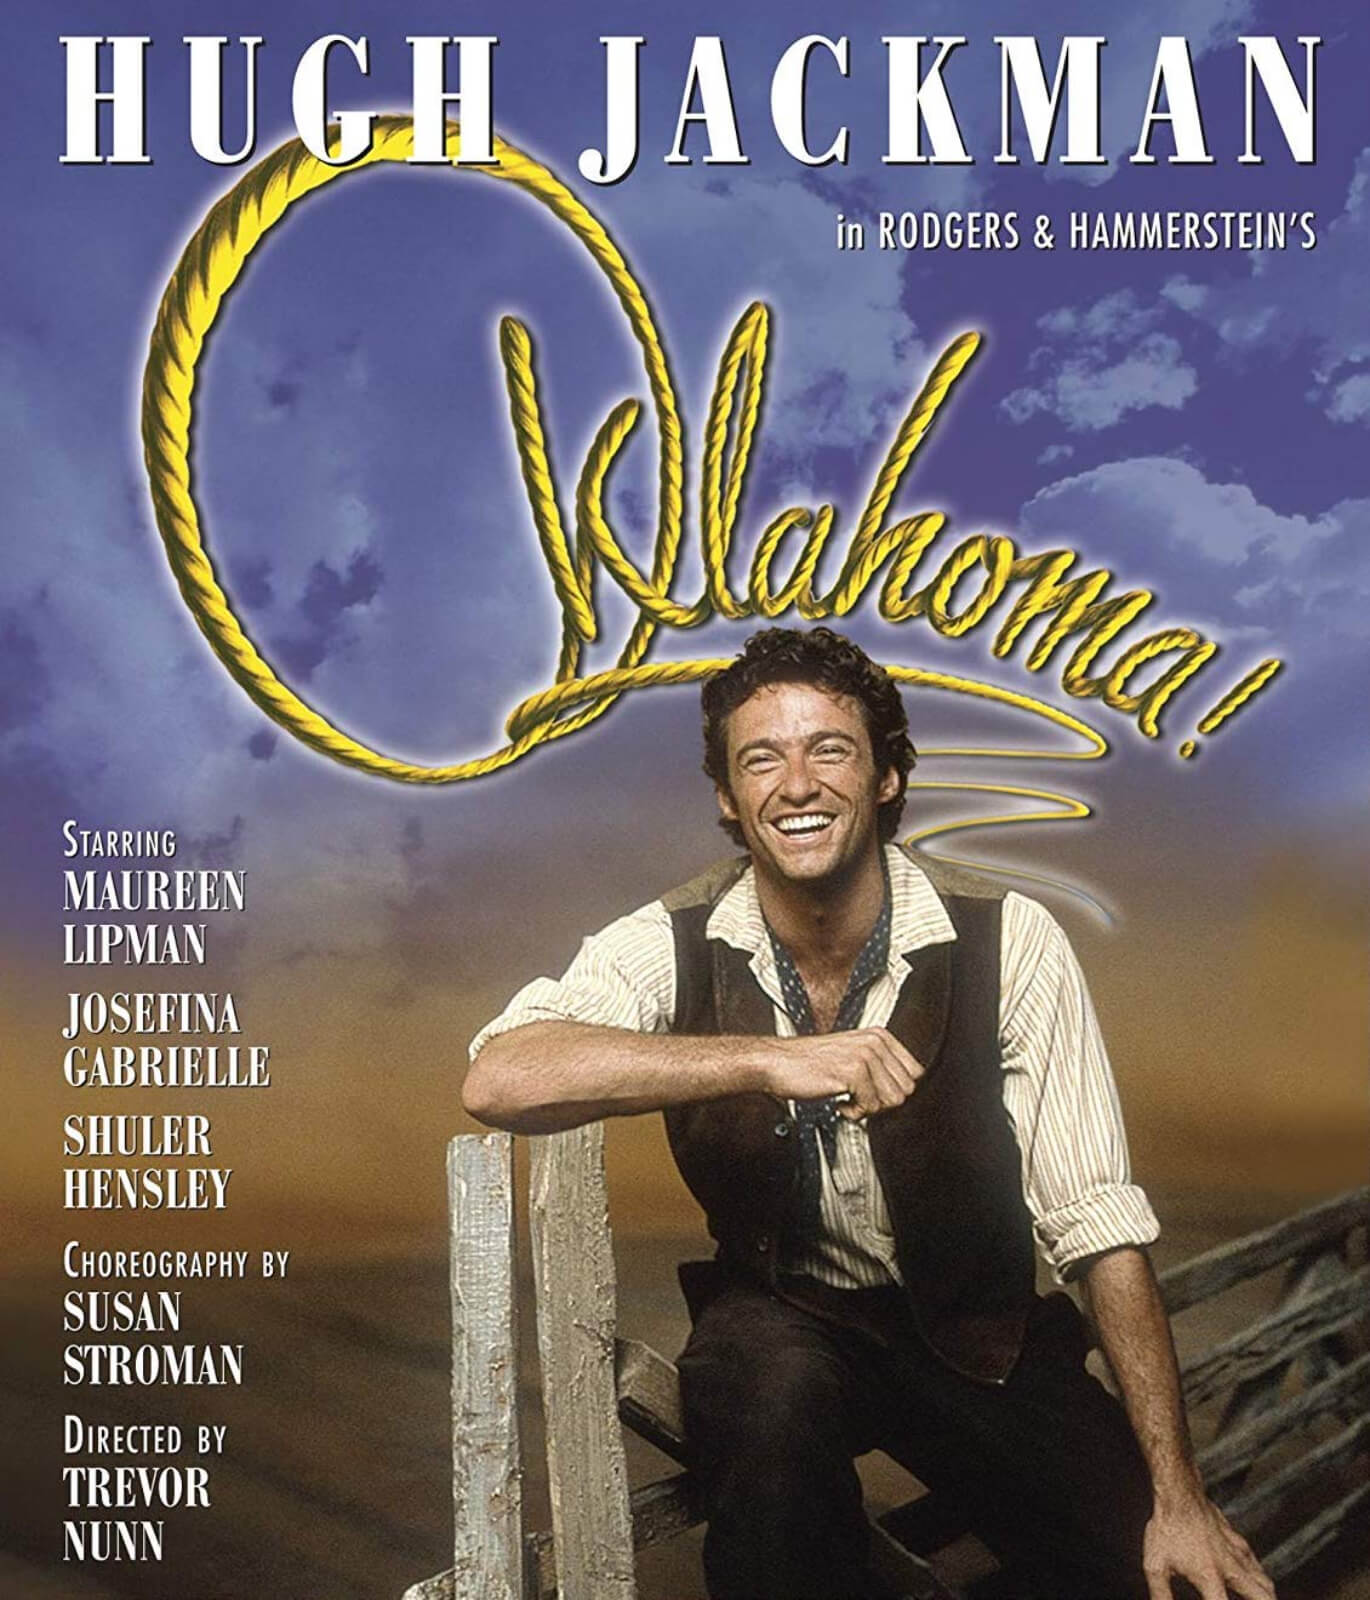 The show's logo poster with Hugh Jackman in the cover, smiling while sitting on a fence. The cast names are written on the left, and the title is strategically placed in the upper part of the page.